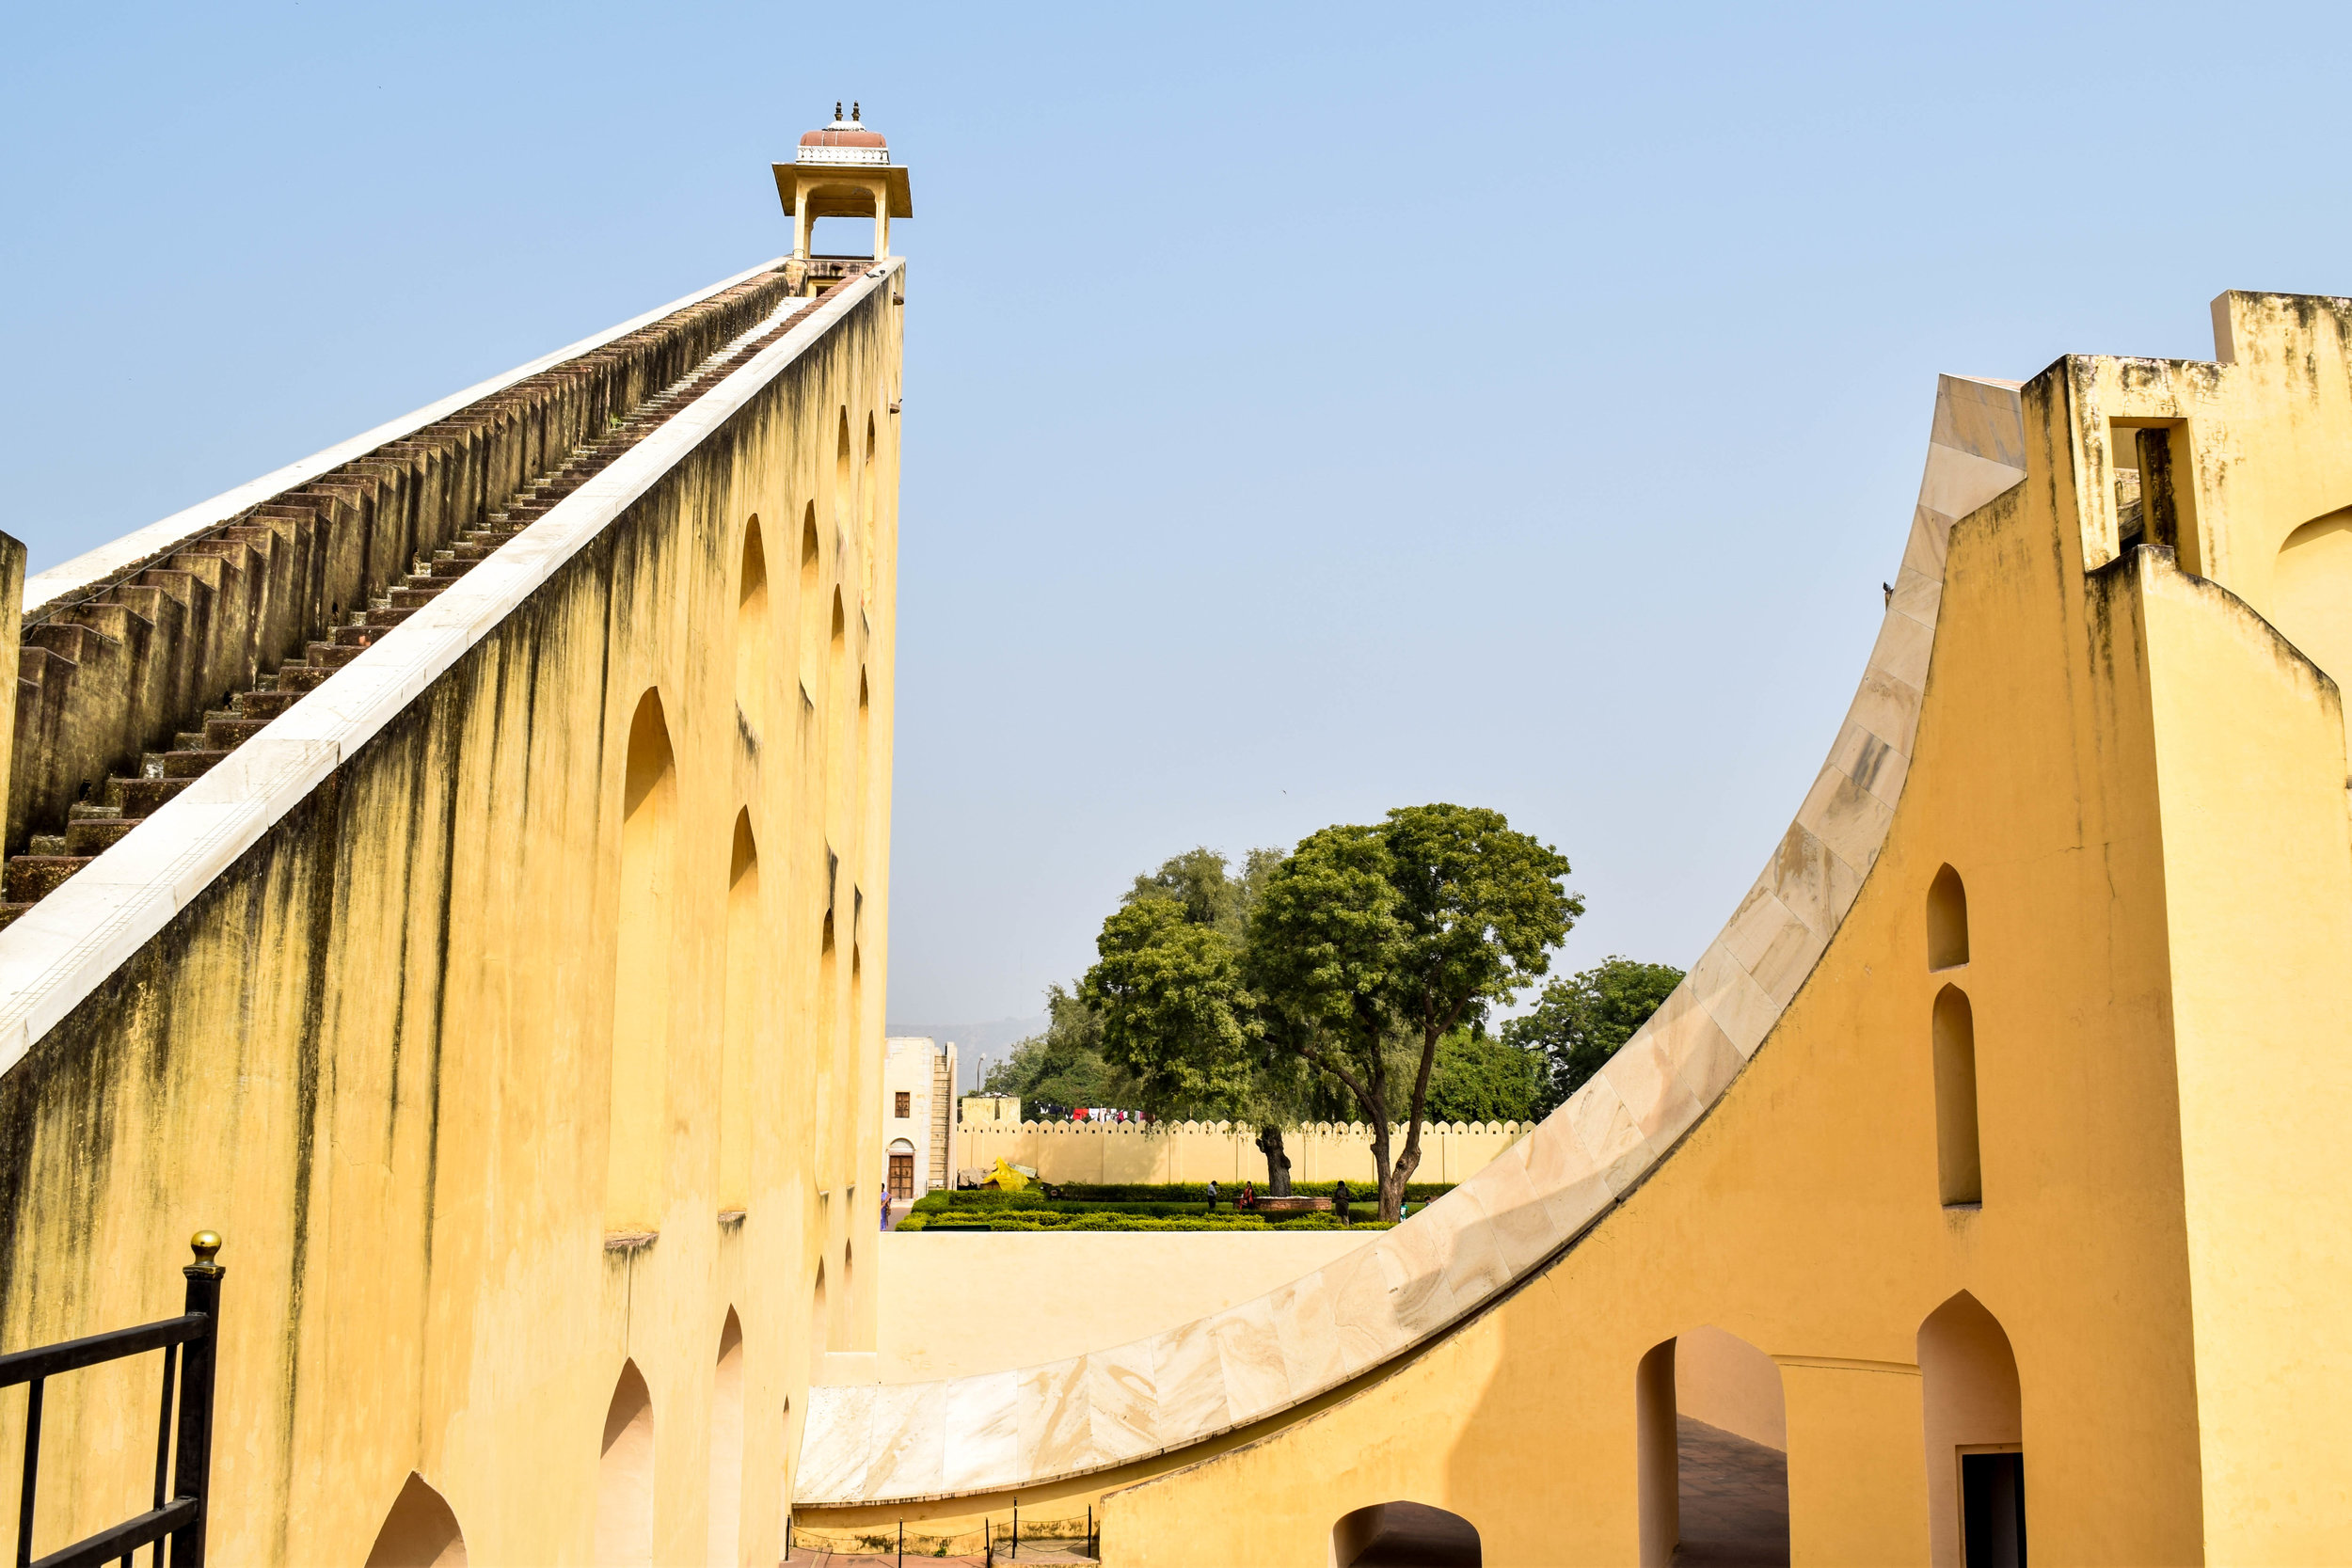 The sundial at Jantar Mantar. Just out of frame at the bottom was a dude trespassing inside the sundial and taking a KILLER selfie.